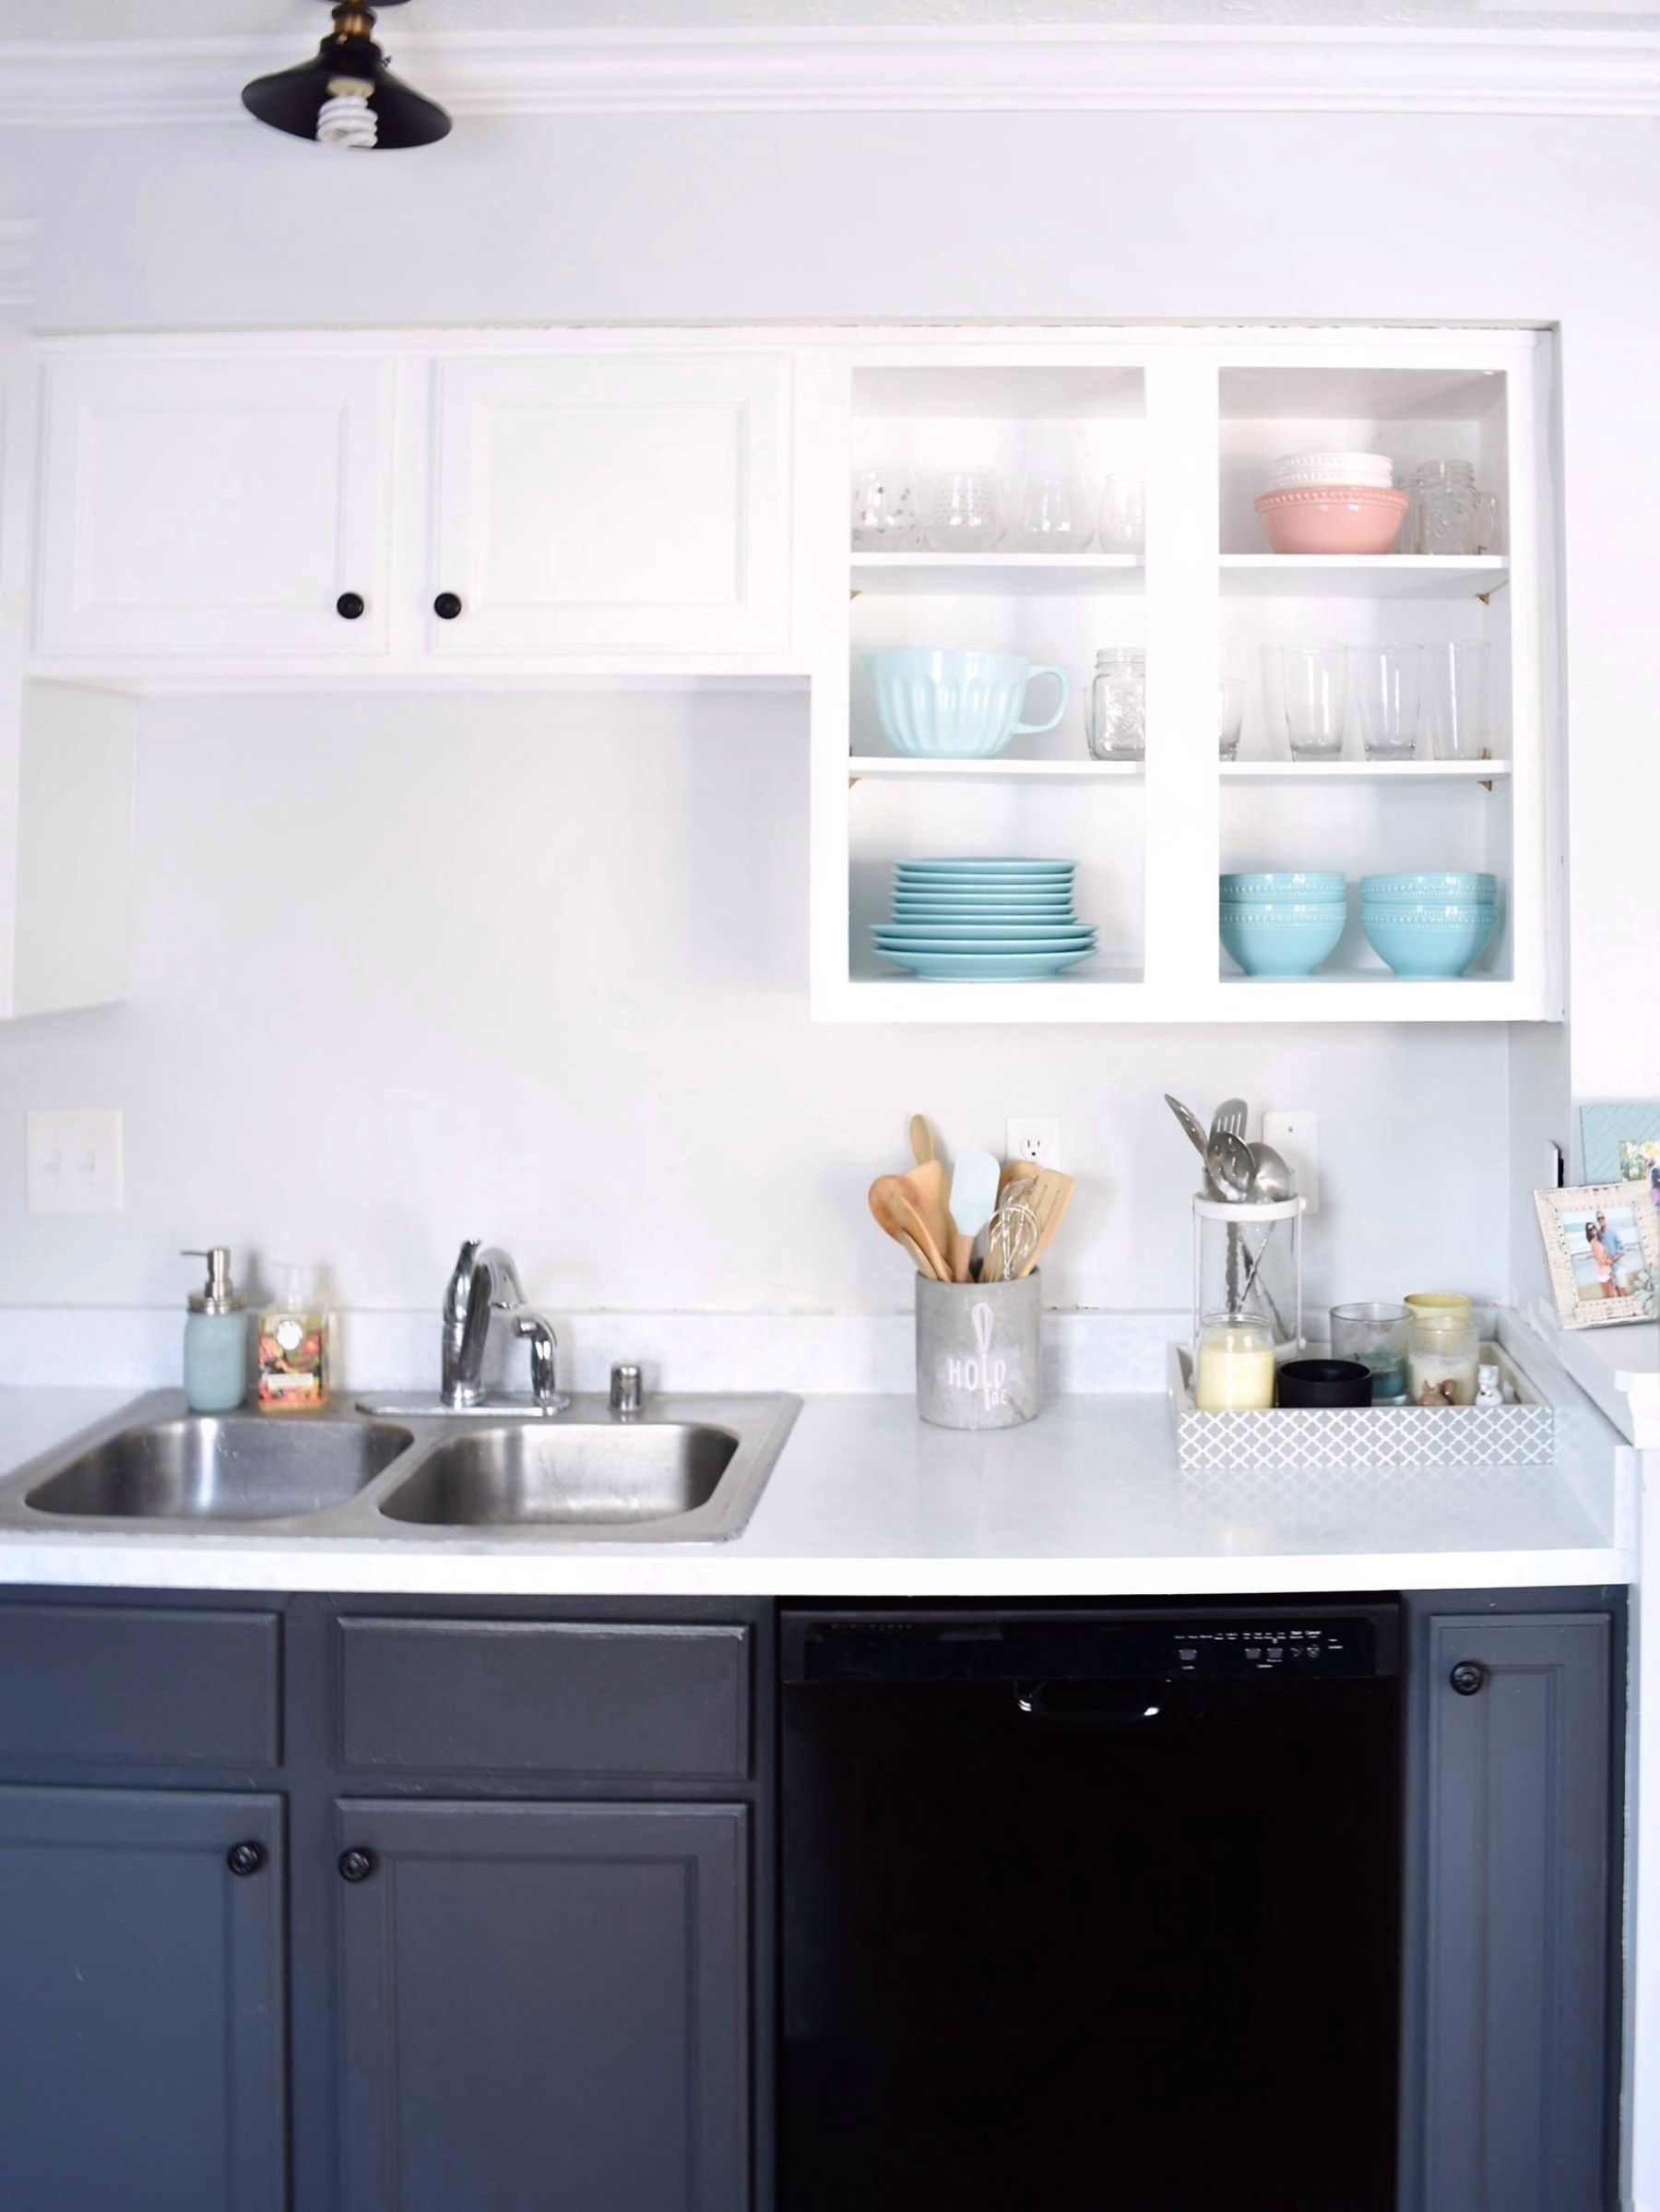 How To Paint Kitchen Countertops as Faux Marble | Diy ...